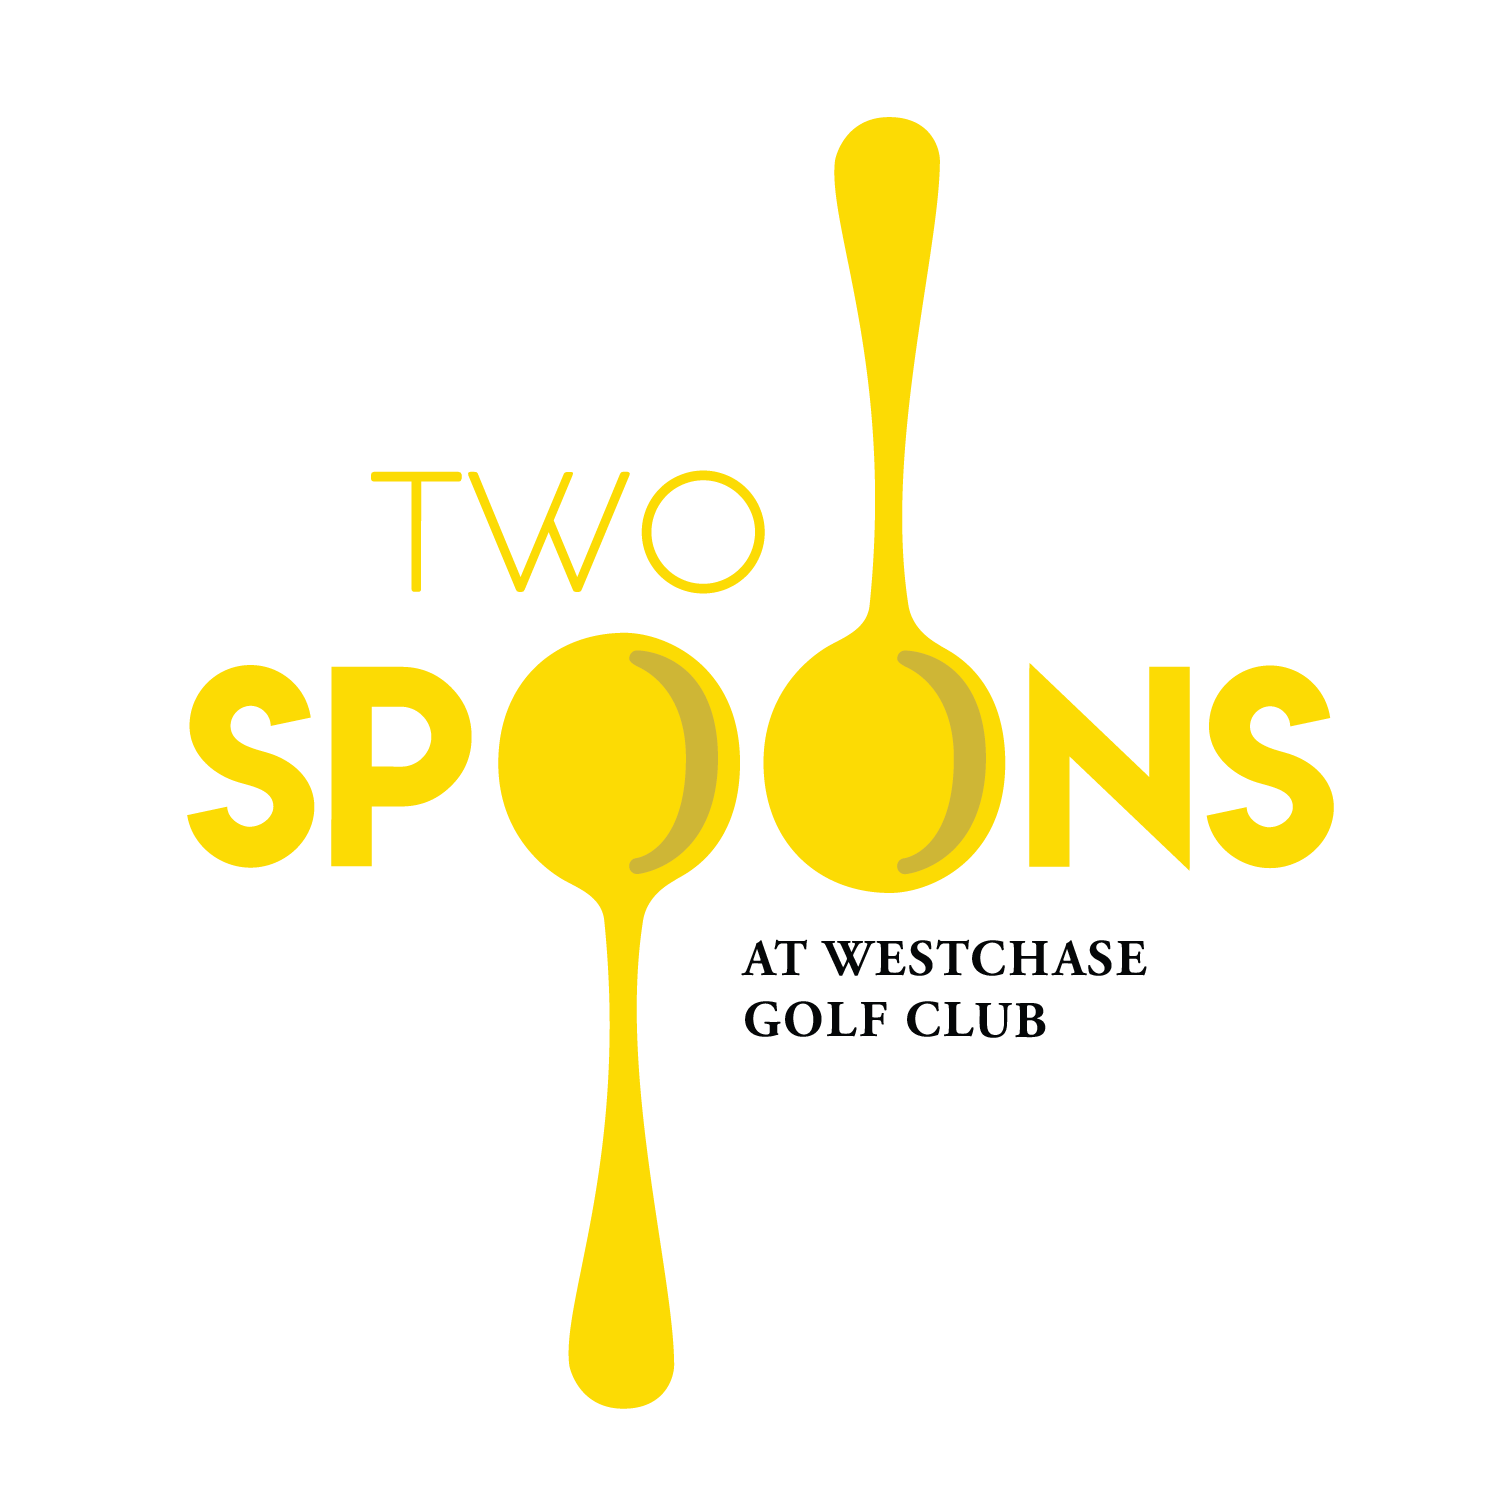 Two-Spoons_Yellow Logo-Transparent Background-With Tagline@3x.png